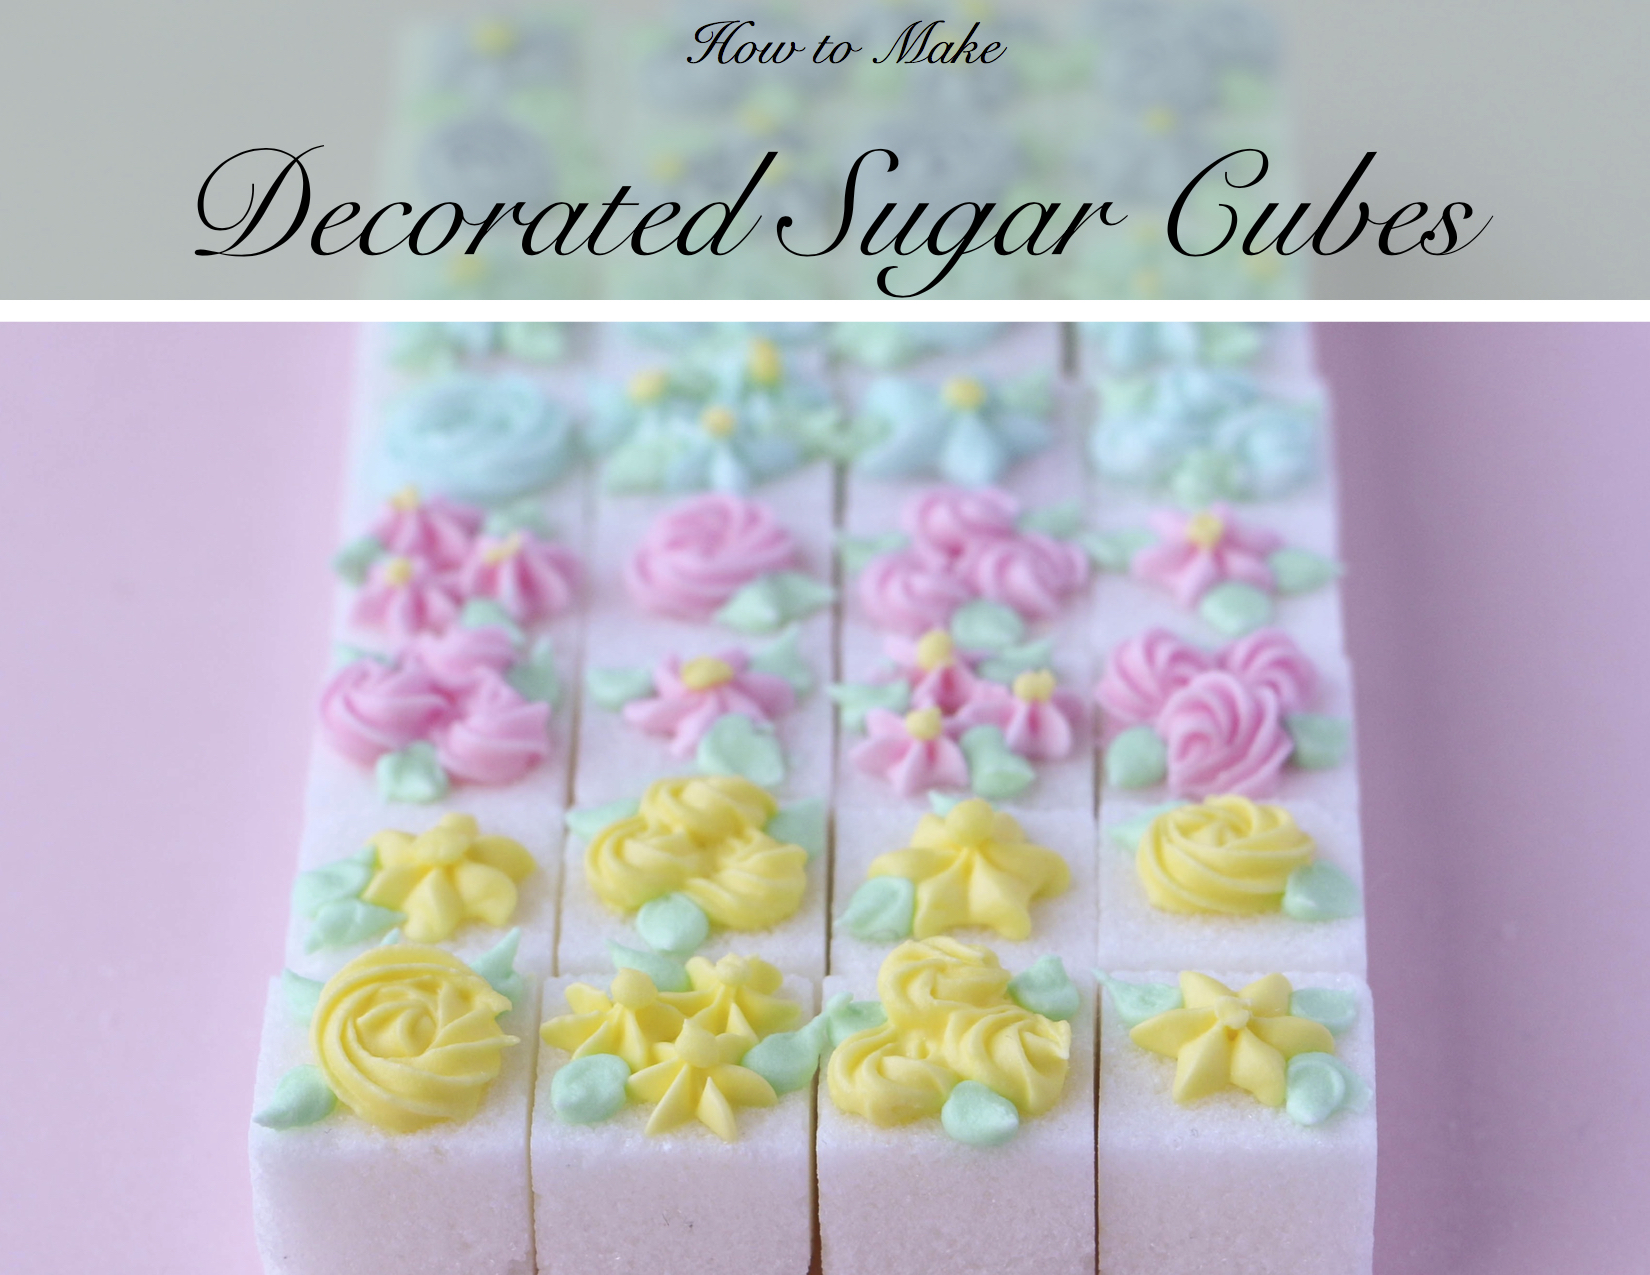 How to Make Decorated Sugar Cubes | Erin Gardner